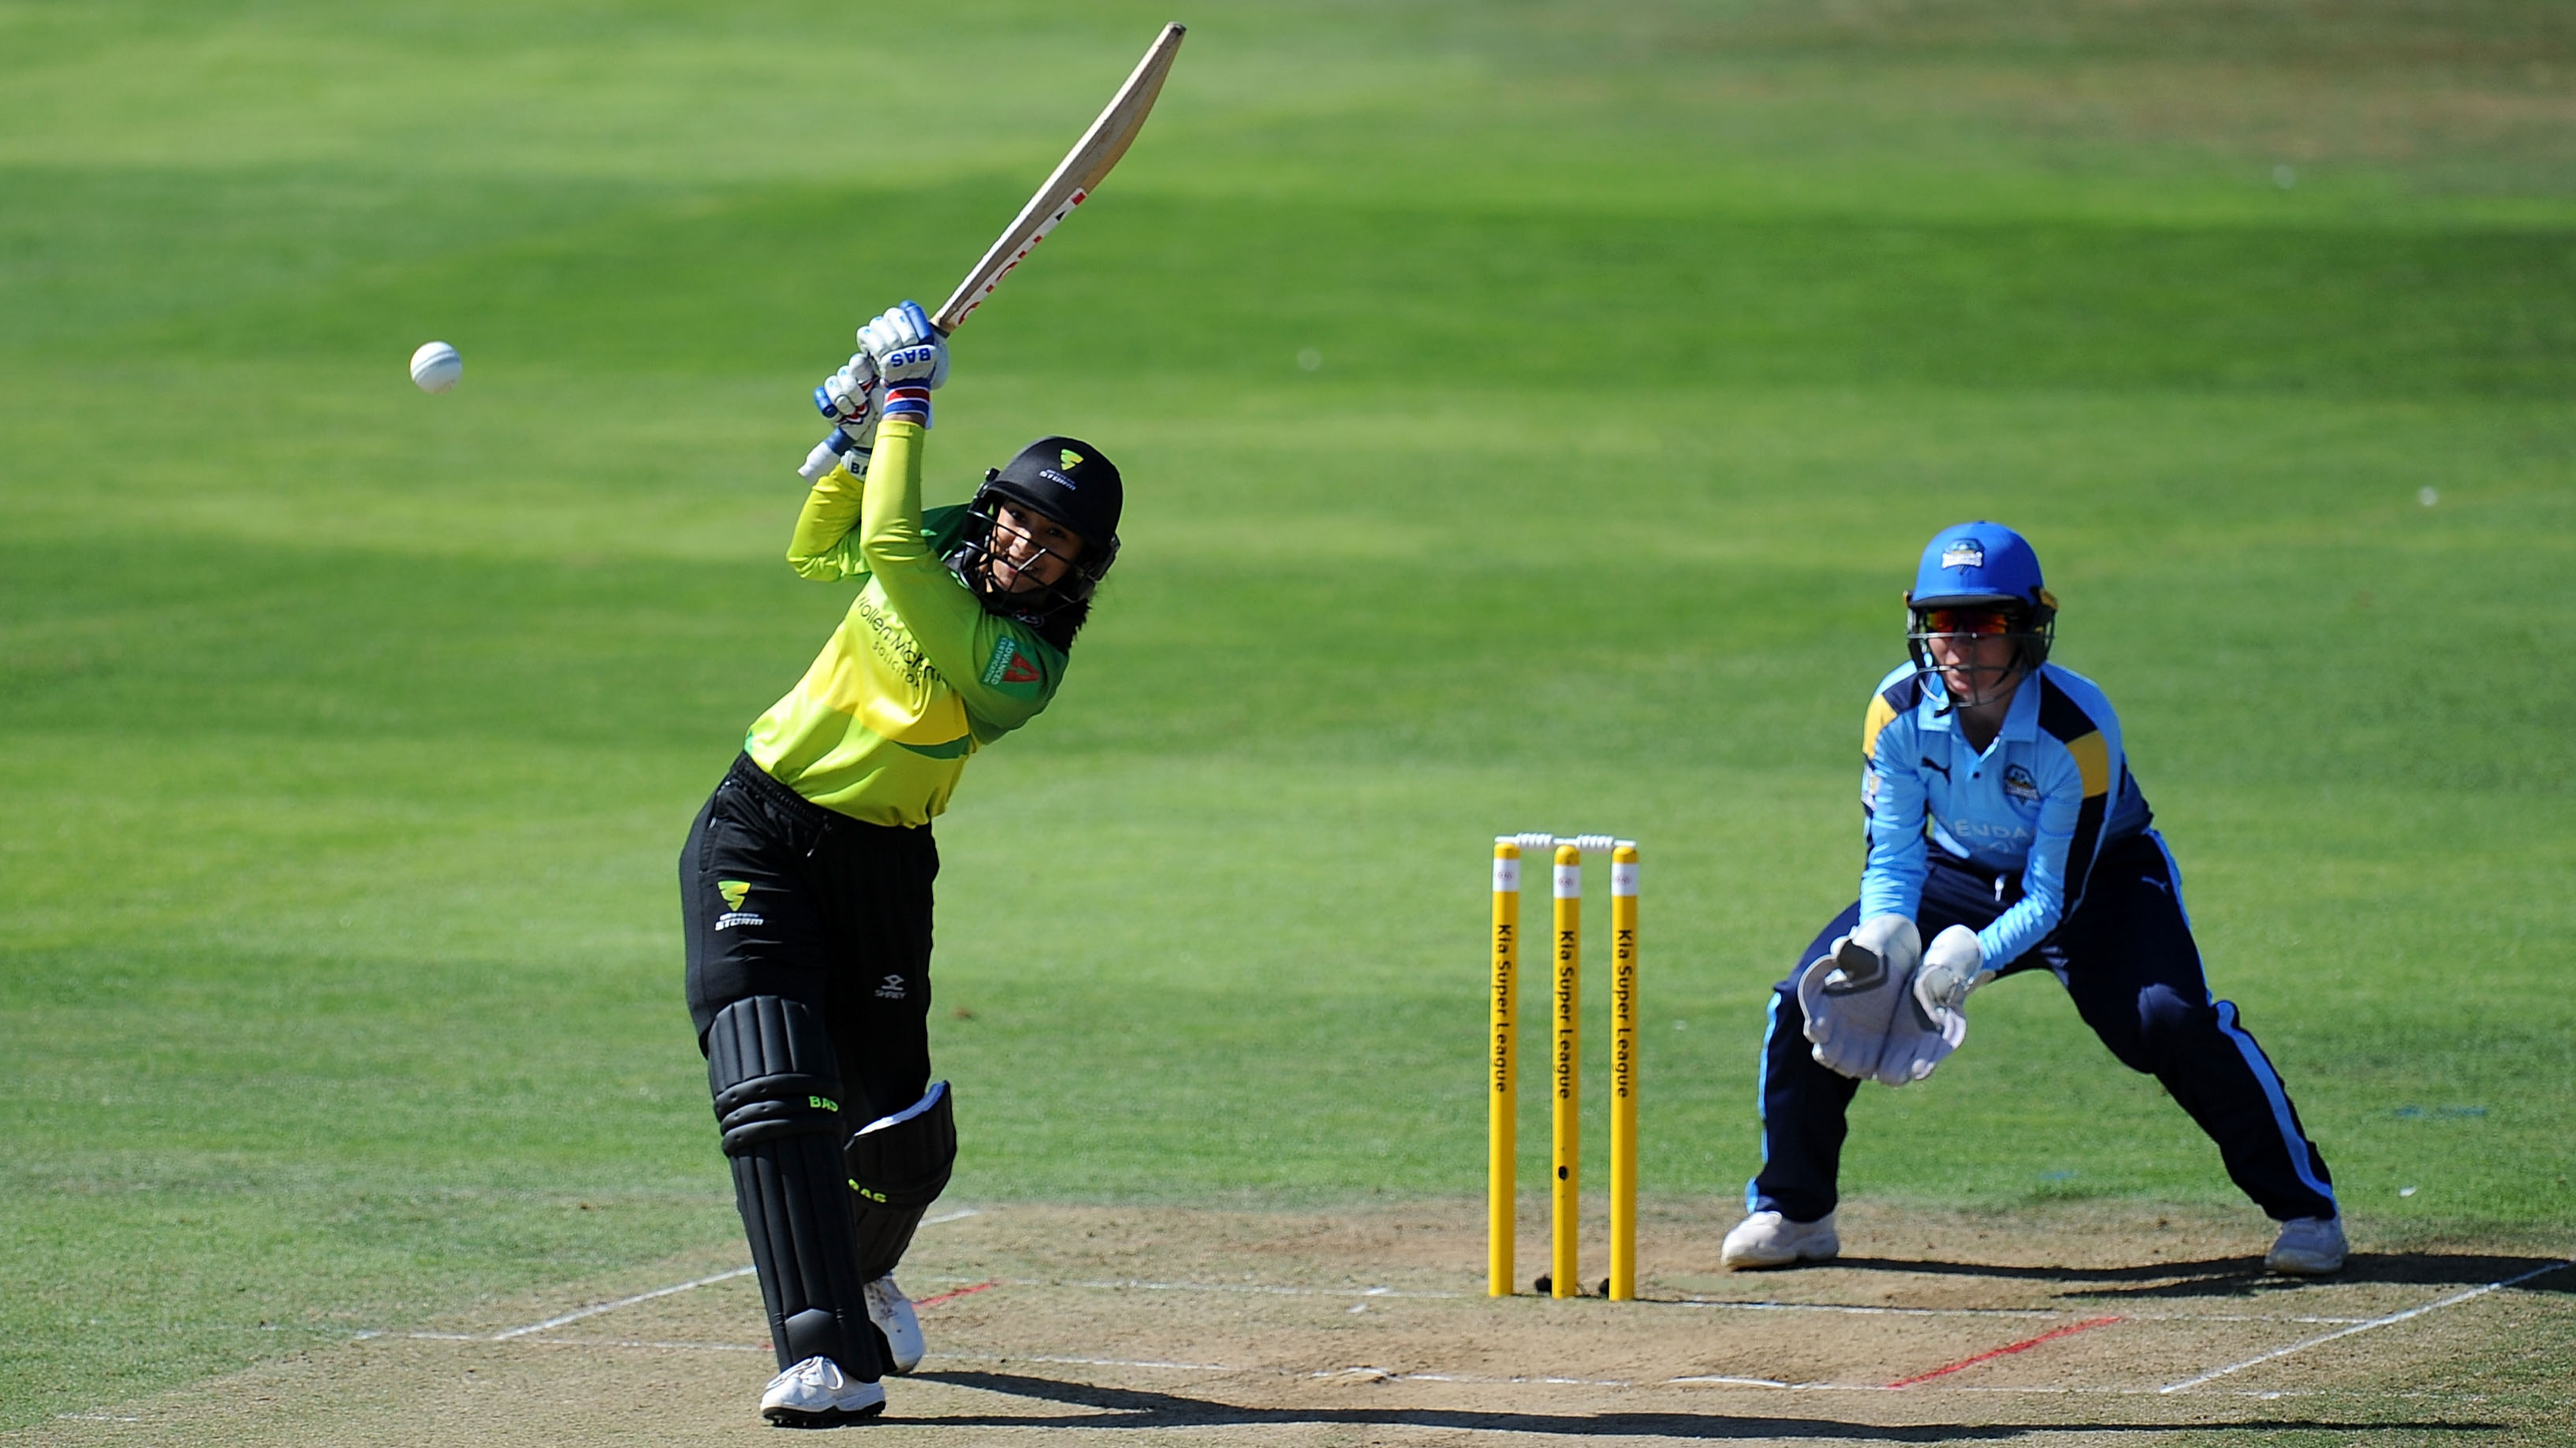 WATCH: Smriti Mandhana blasts 48 off 20 balls on her KSL debut for Western Storm